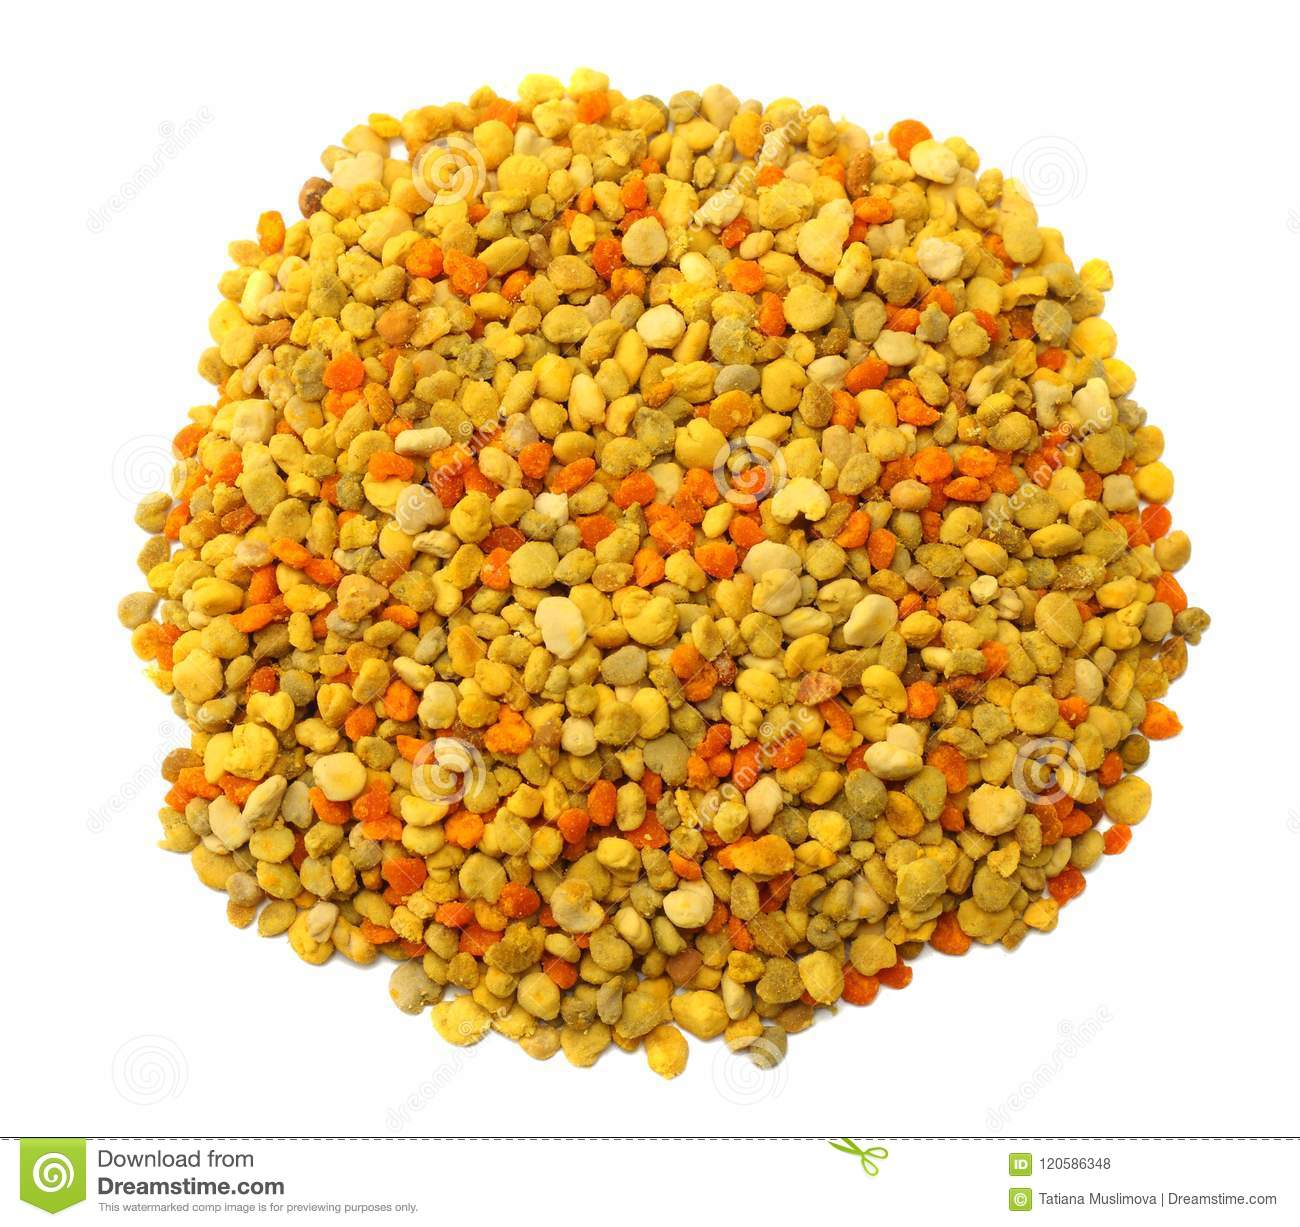 Honey bee pollen isolated on white background. top view